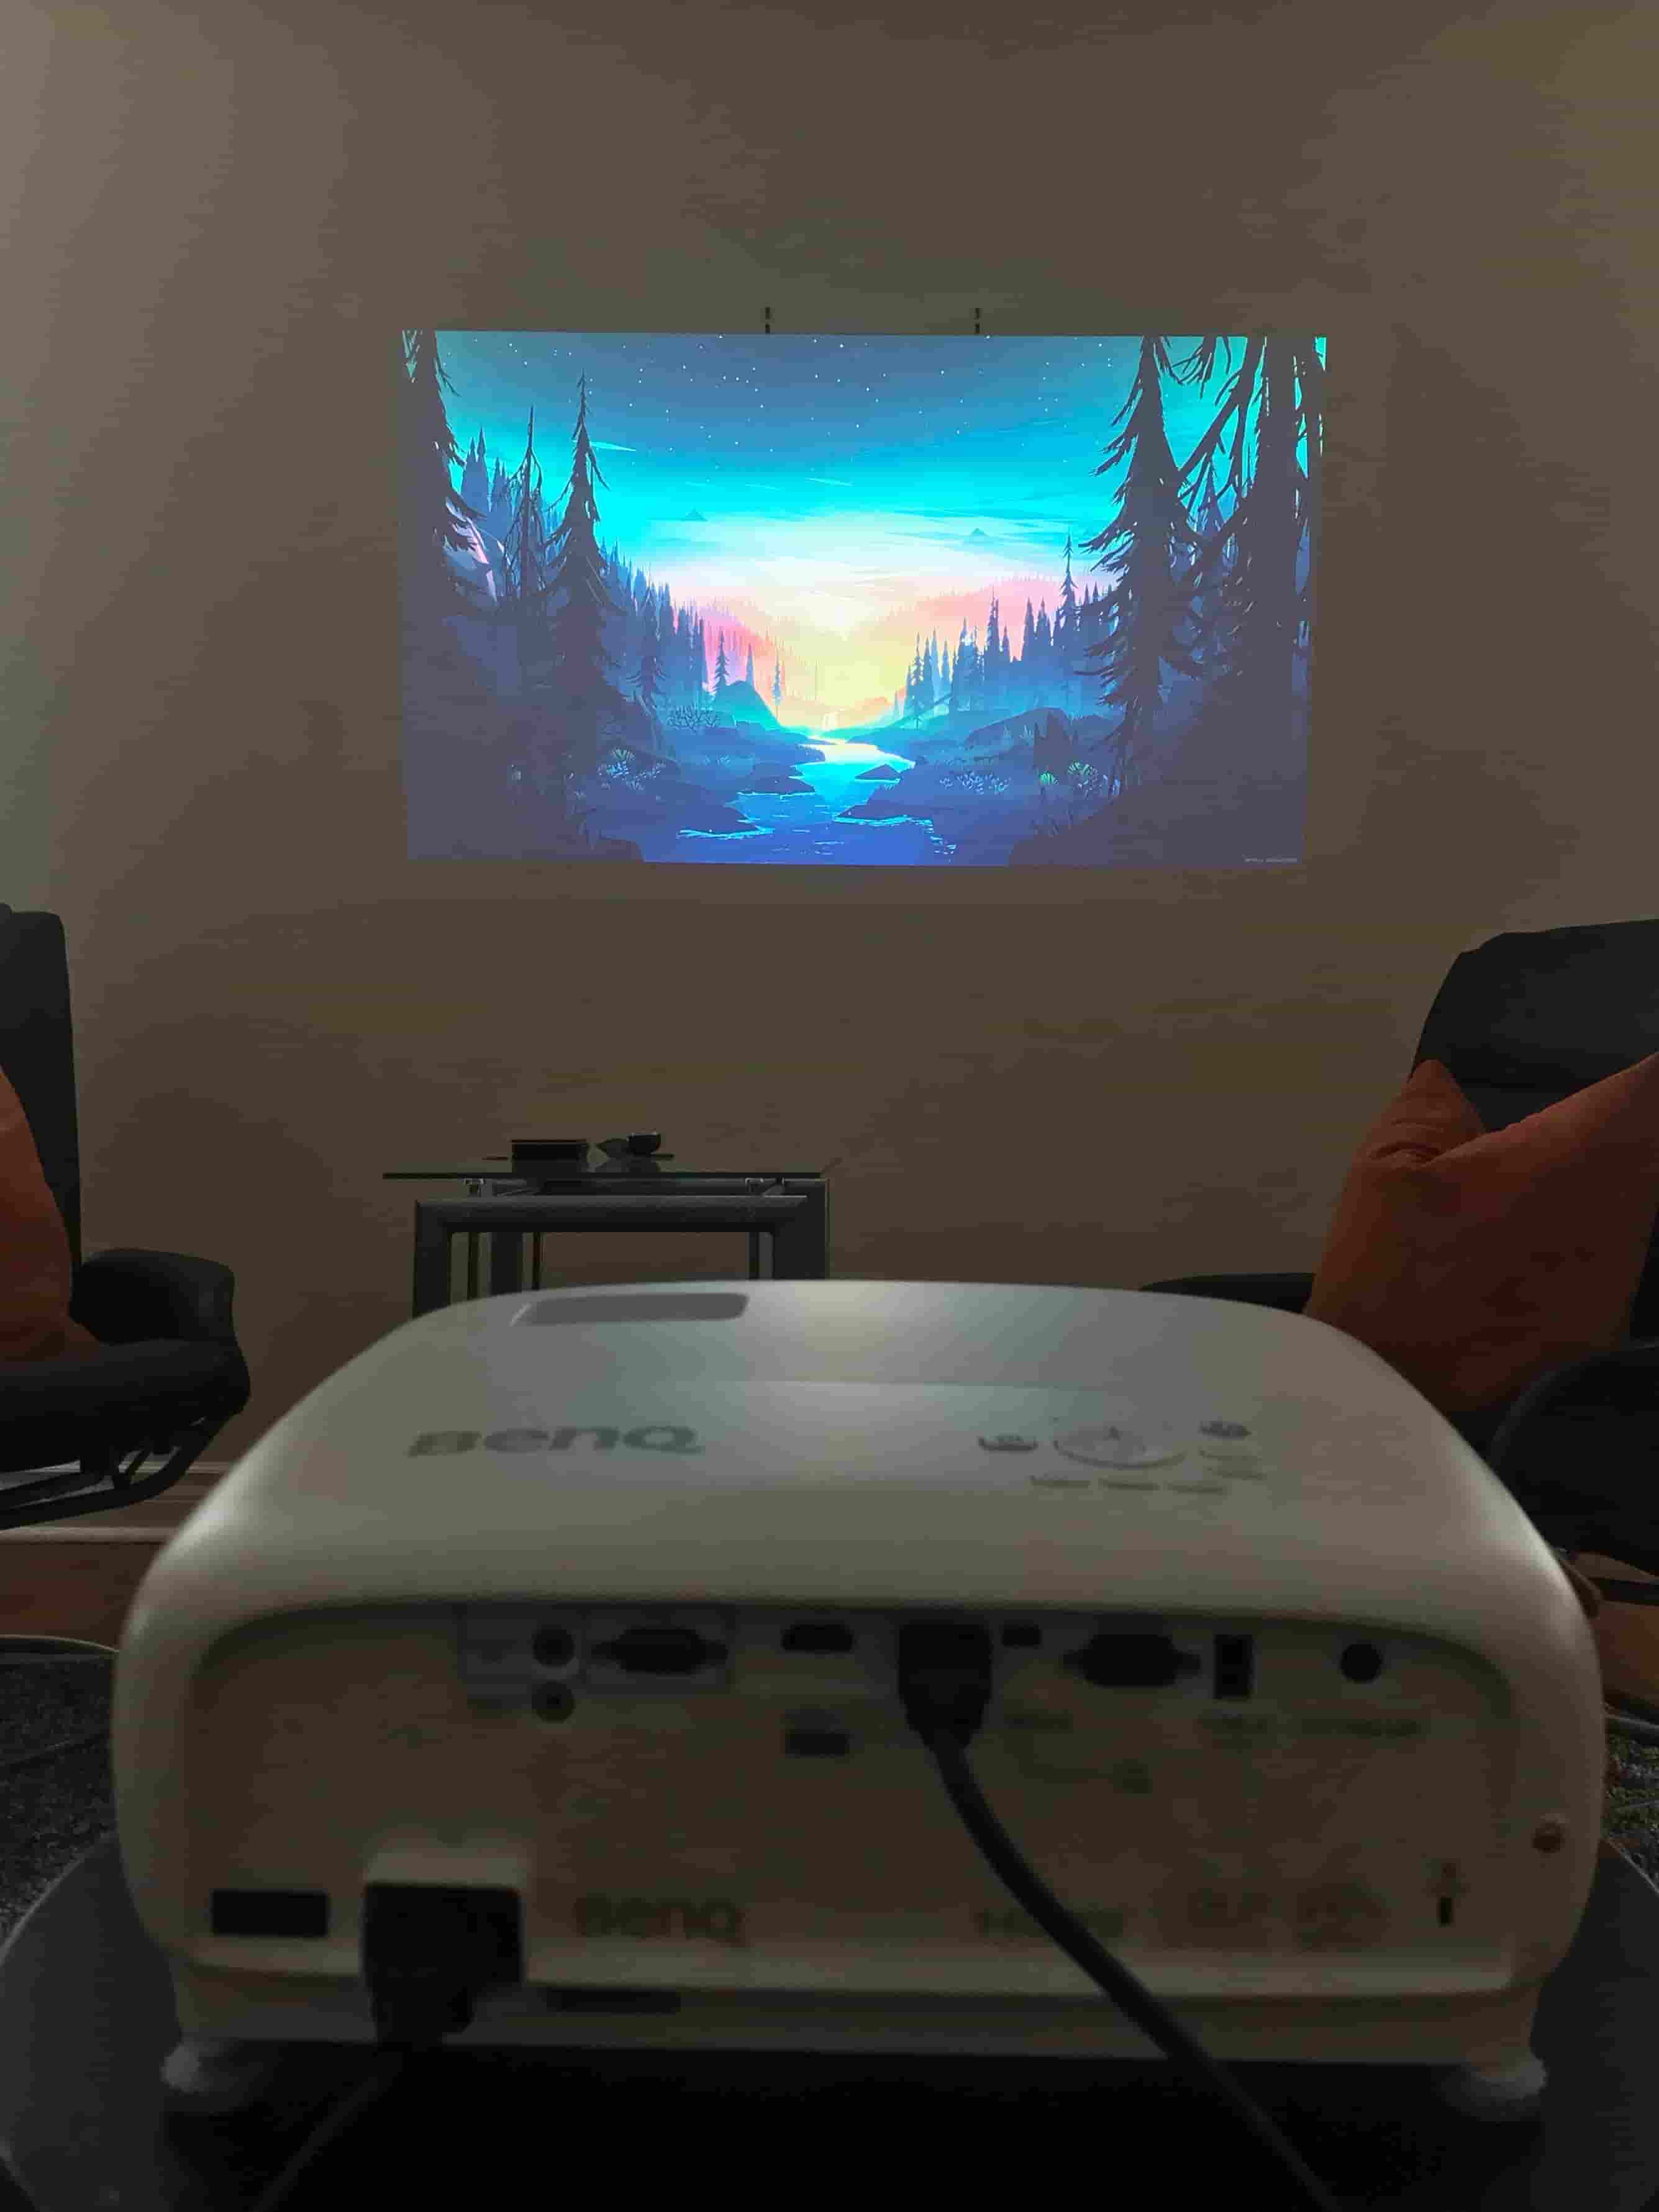 BenQ TK800M 4K Sports Projector projecting an image